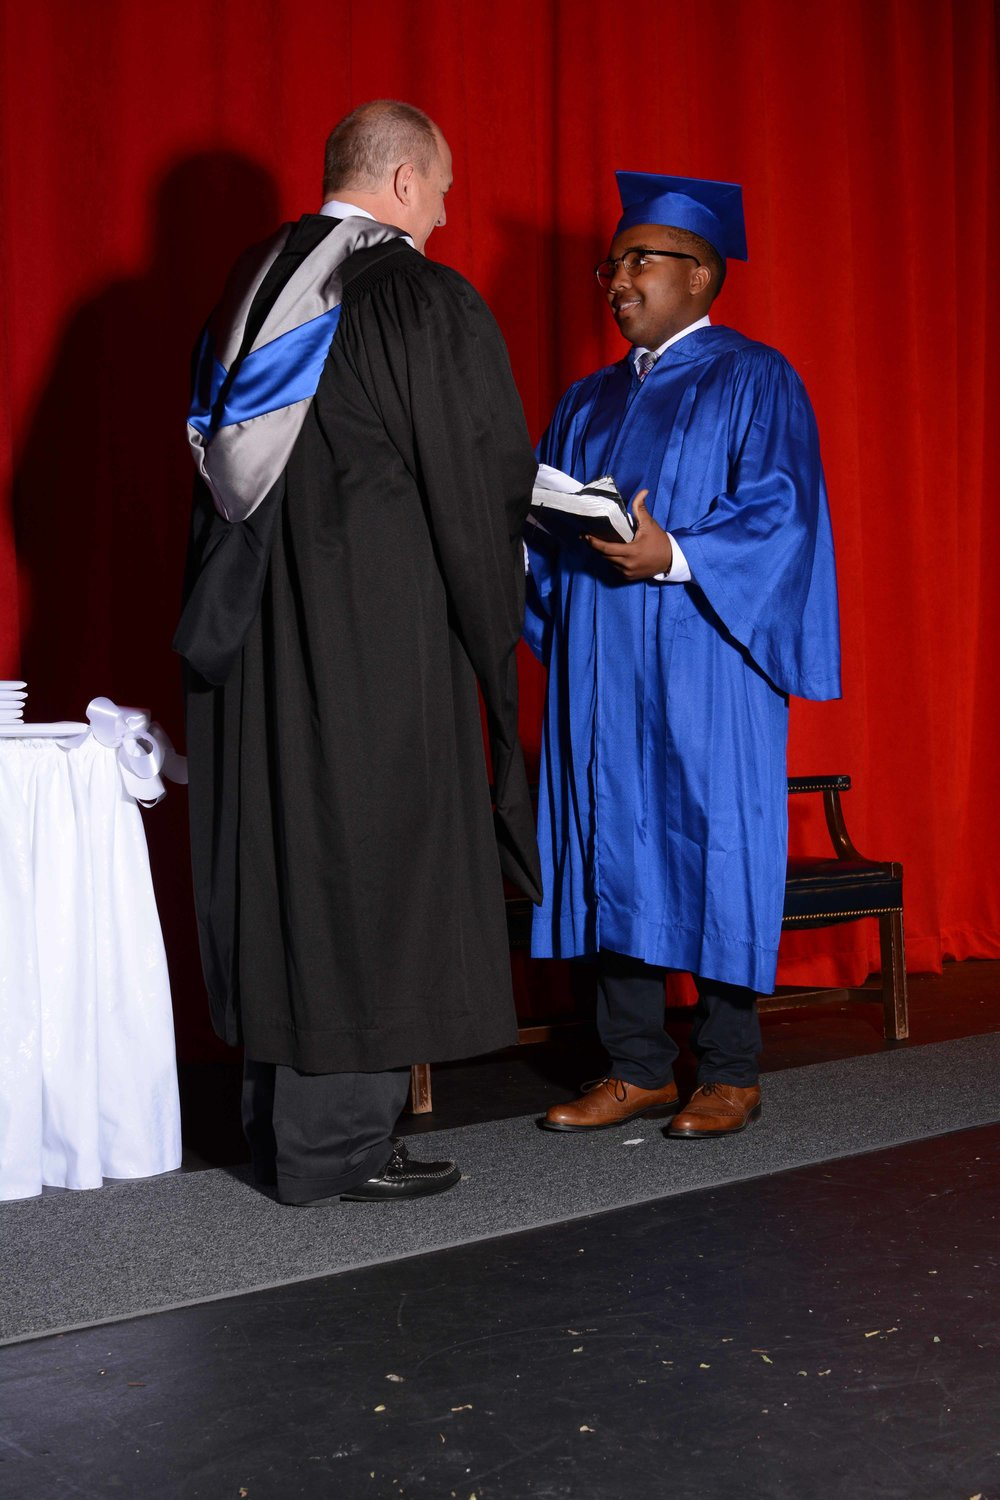 May15 HardingGraduation38.jpg